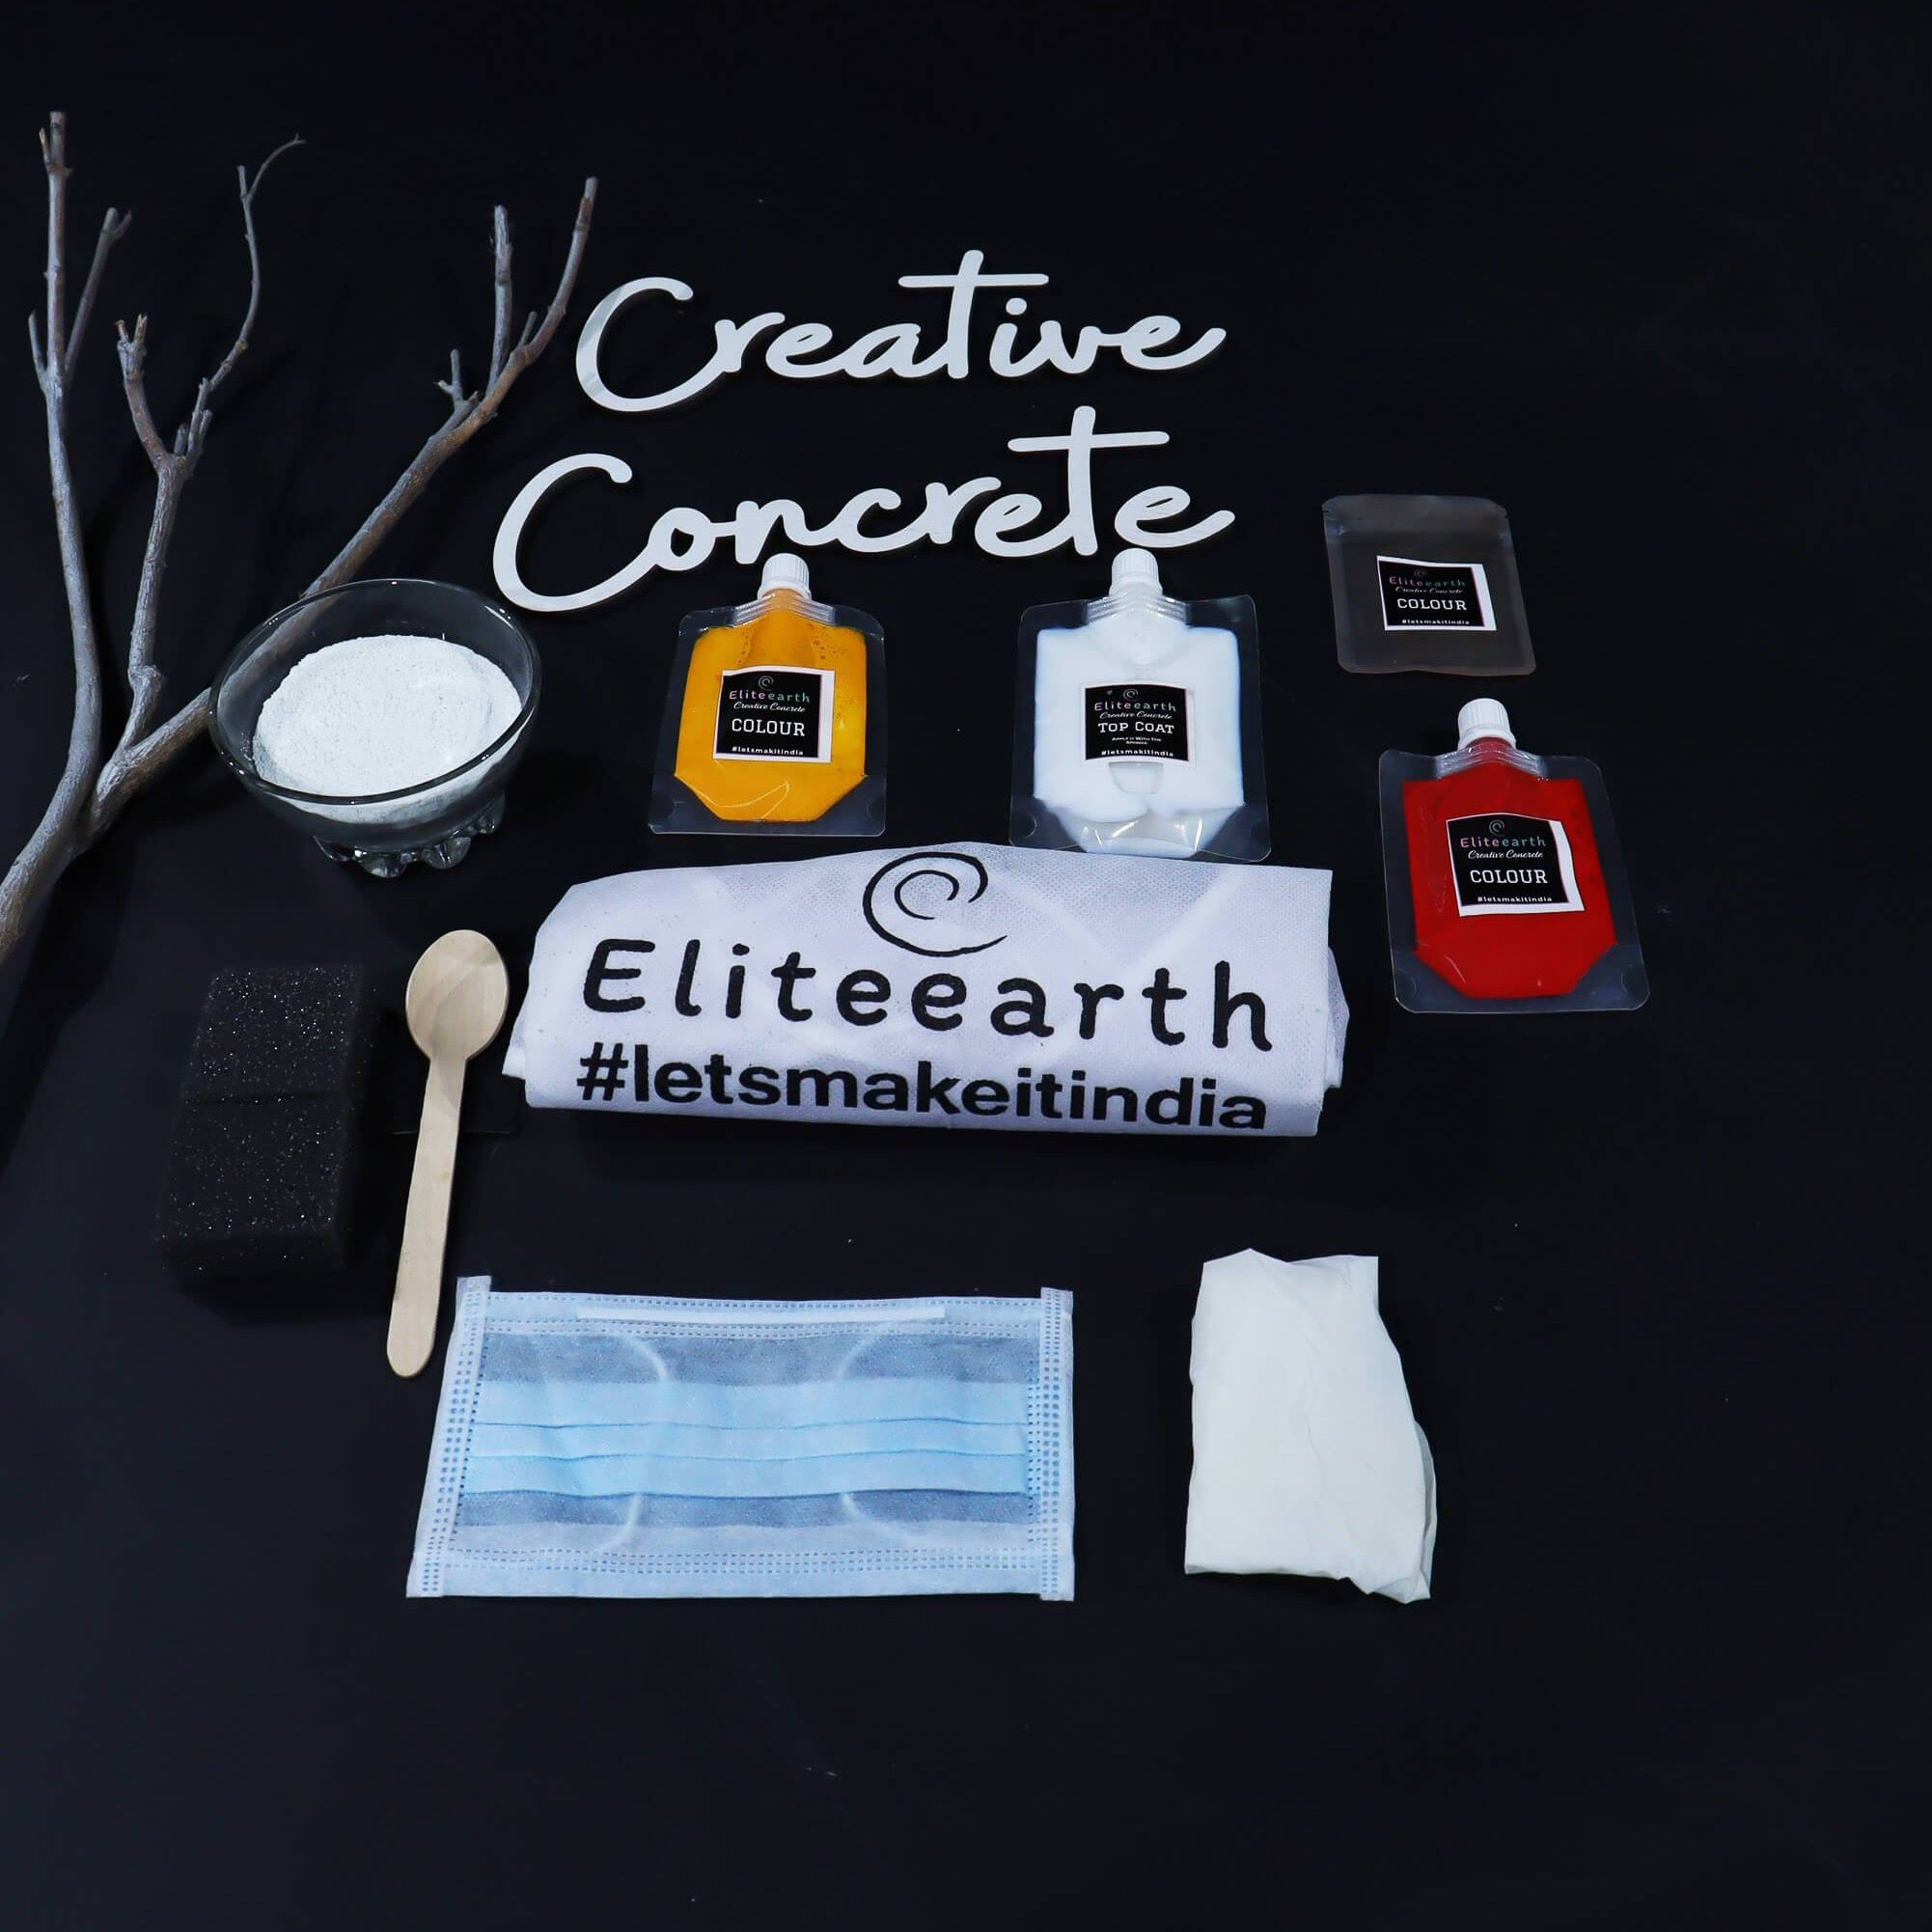 Eliteearth's DIY Creative Concrete Kit-Eliteearth